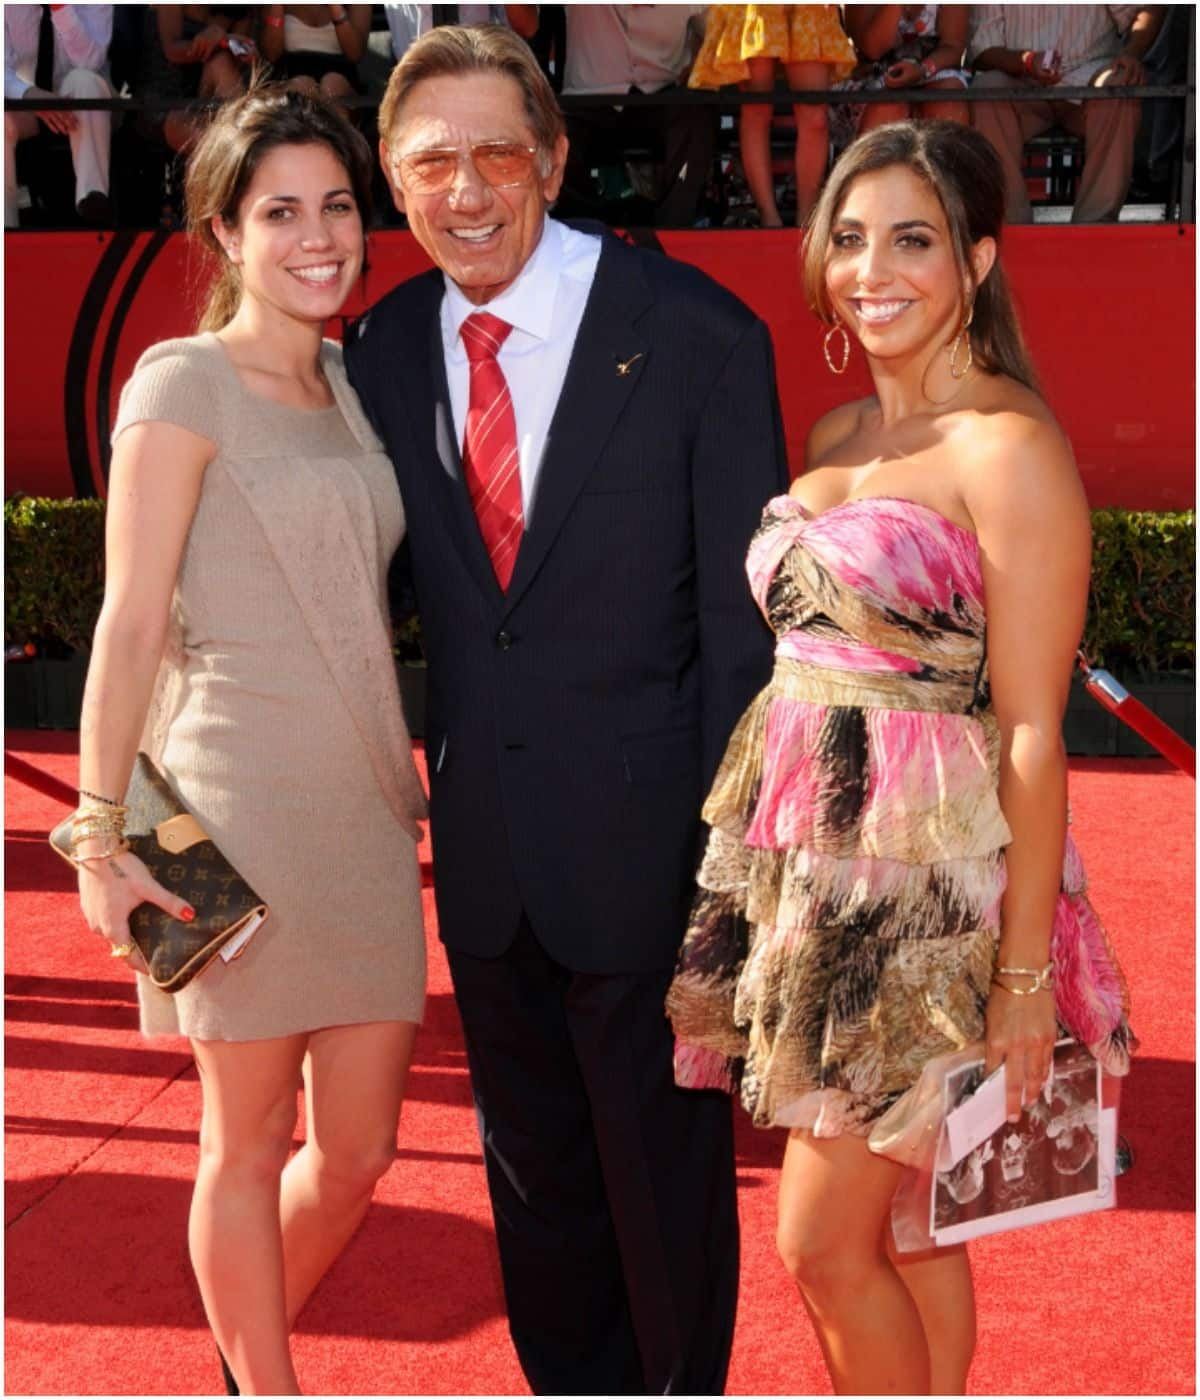 Joe Namath with his daughters